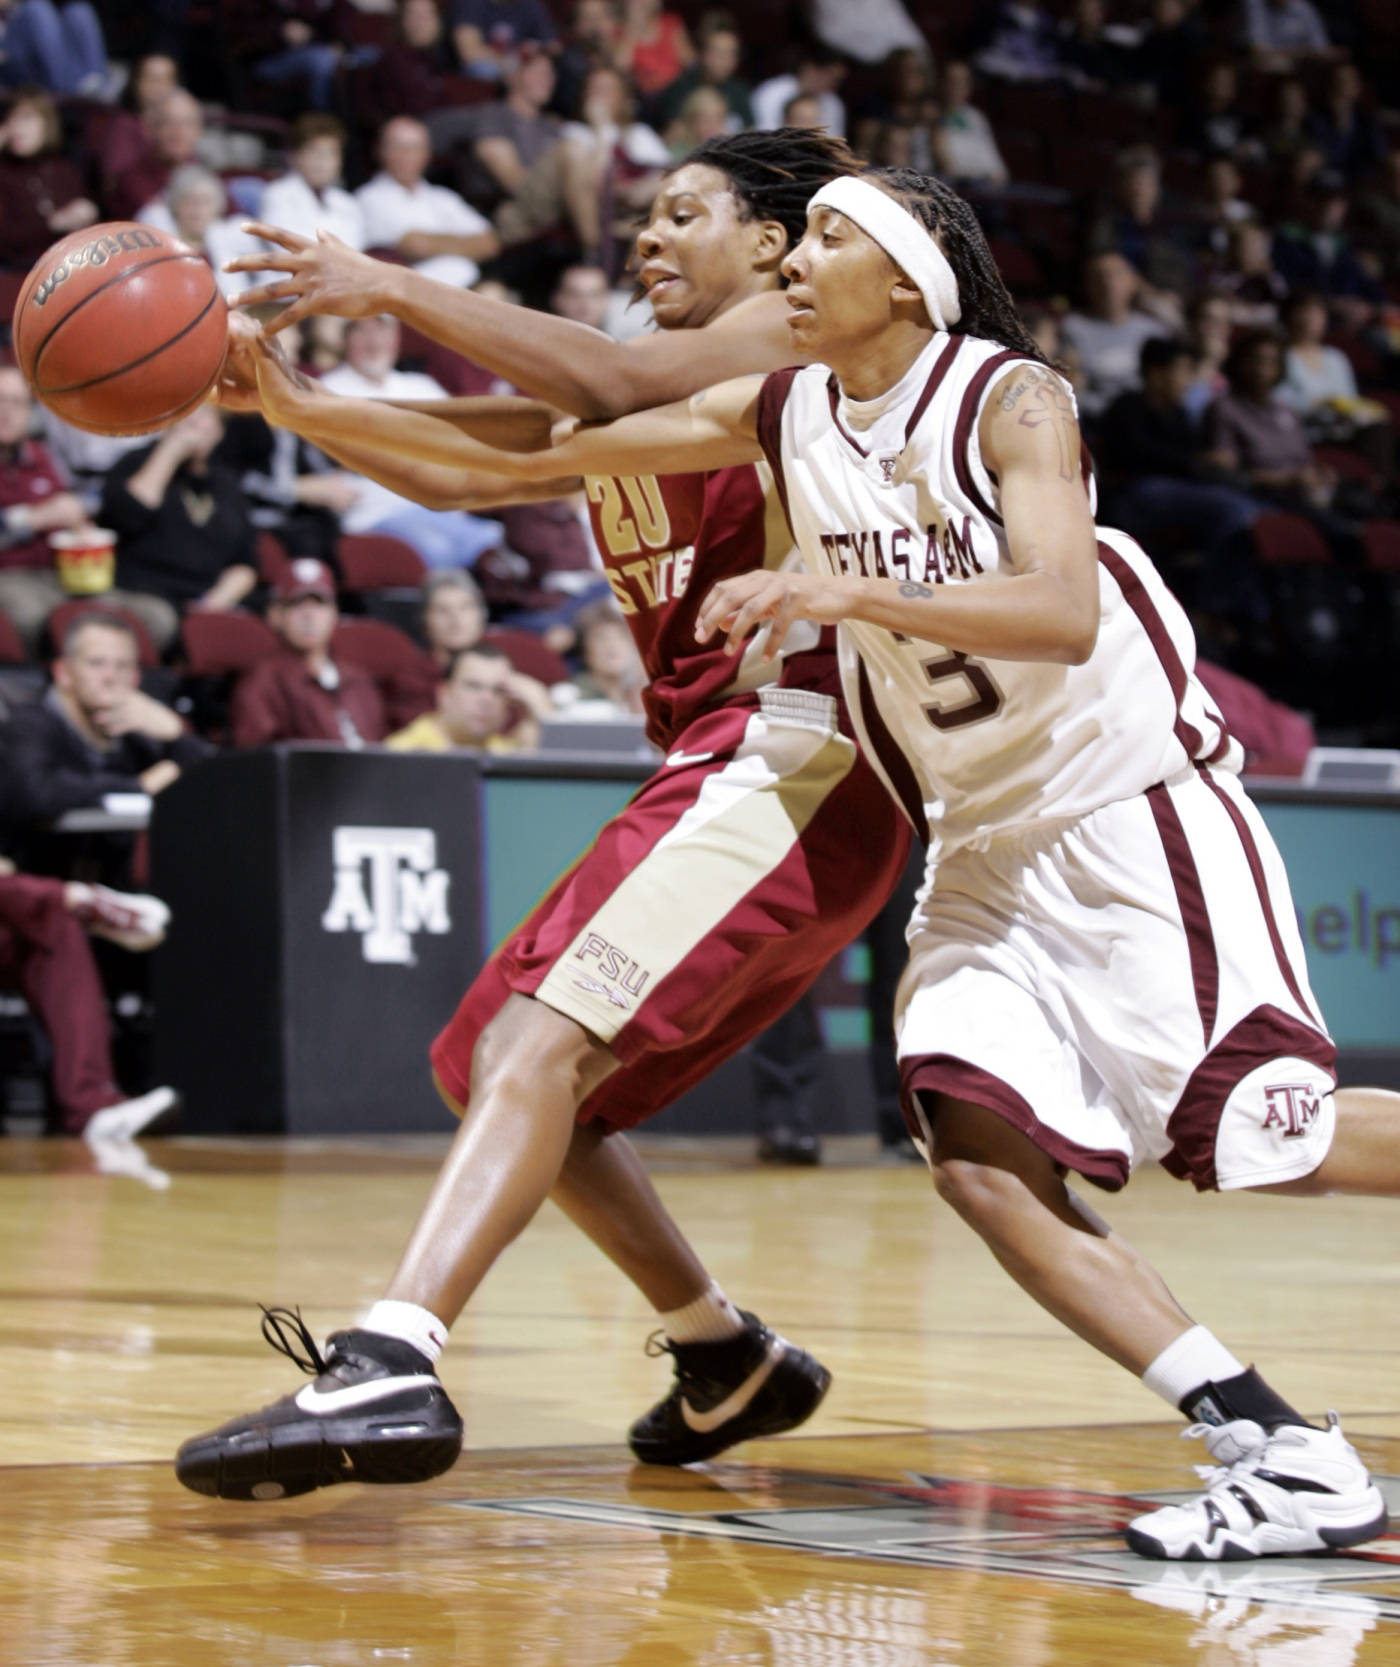 Texas A&M's Takia Starks, left, goes for the steal on an inbound pass to Florida State's Tanae Davis-Cain during the first half of a basketball game Thursday, Dec. 6, 2007, in College Station, Texas. (AP Photo/Paul Zoeller)